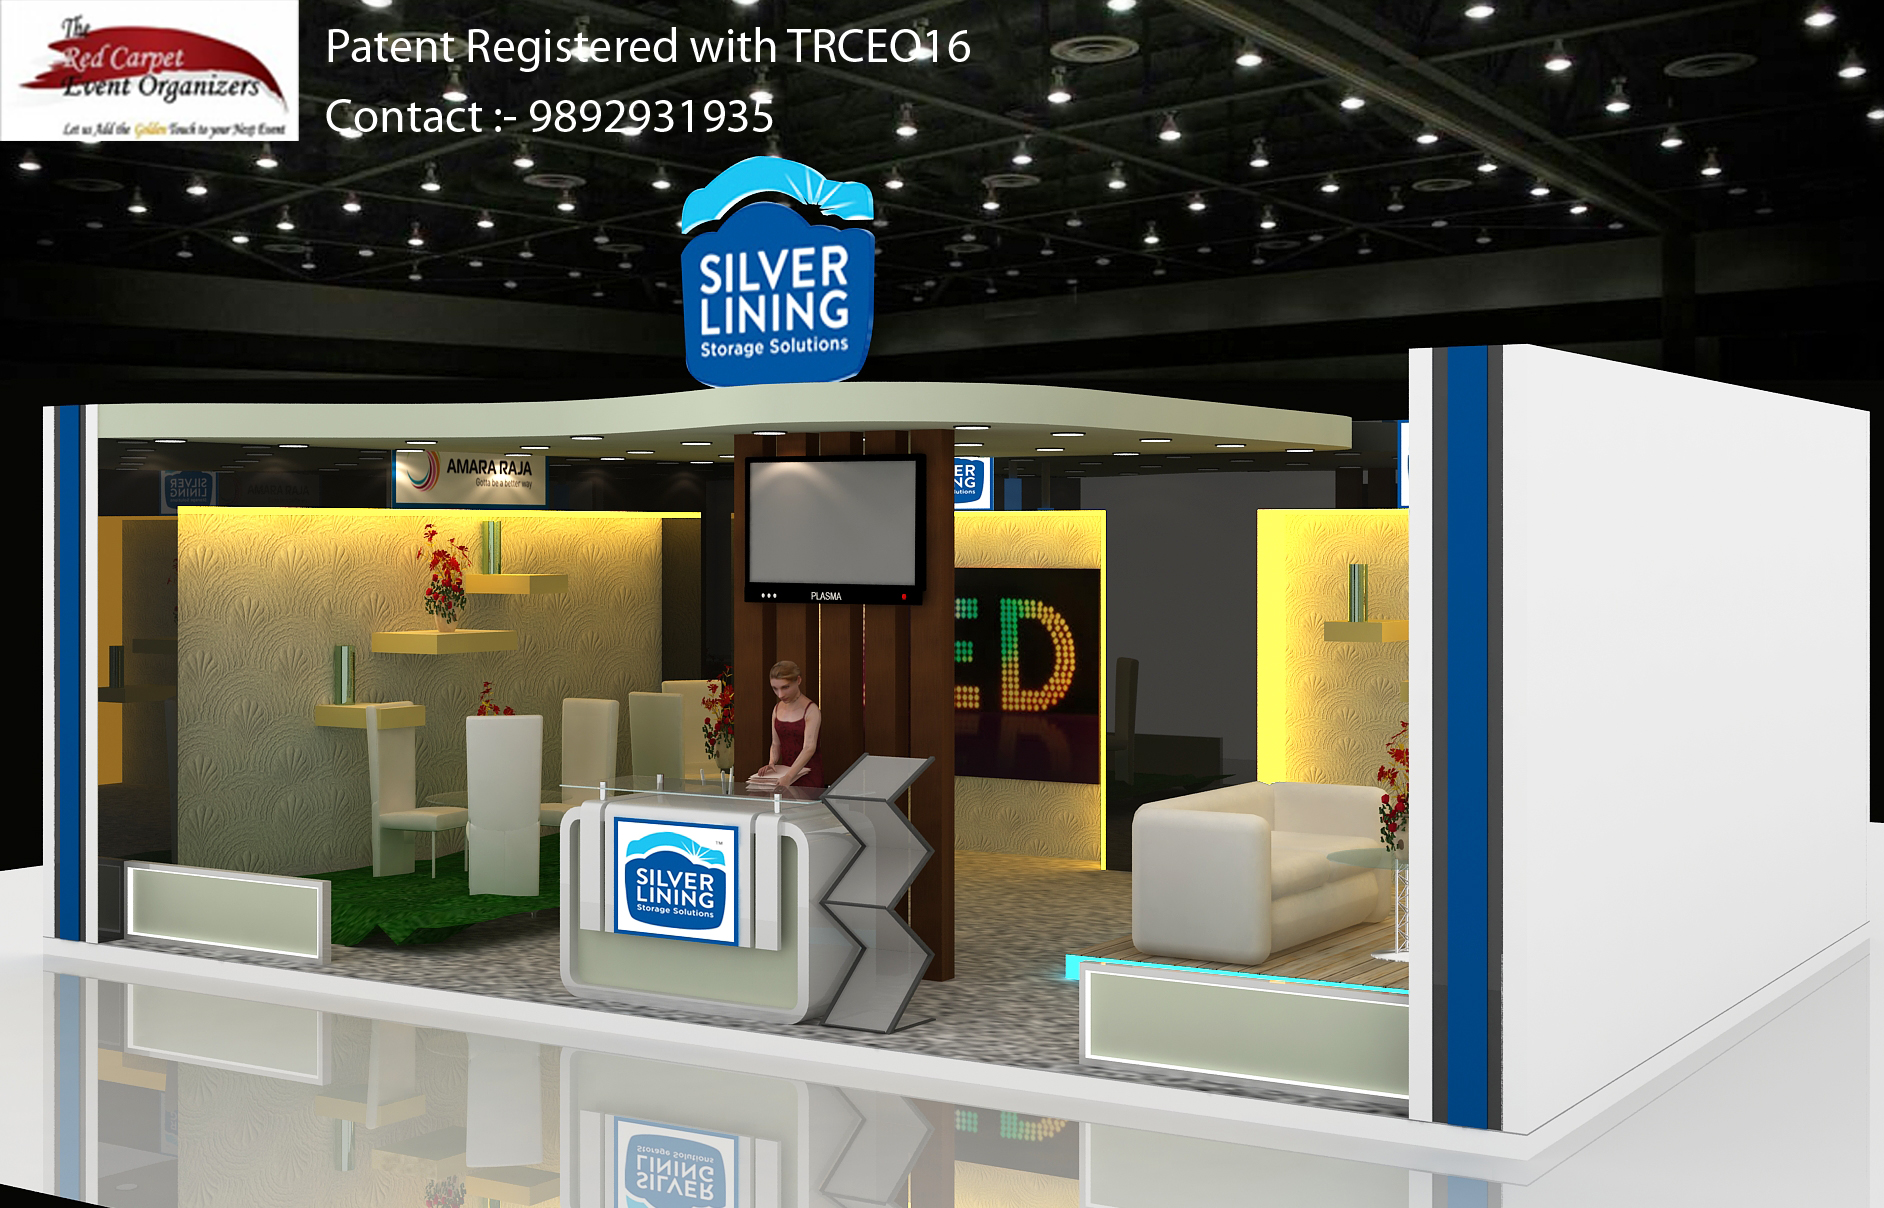 Exhibition Stall Design And Fabrication In : Exhibition stall design fabricators the red carpet event organizers